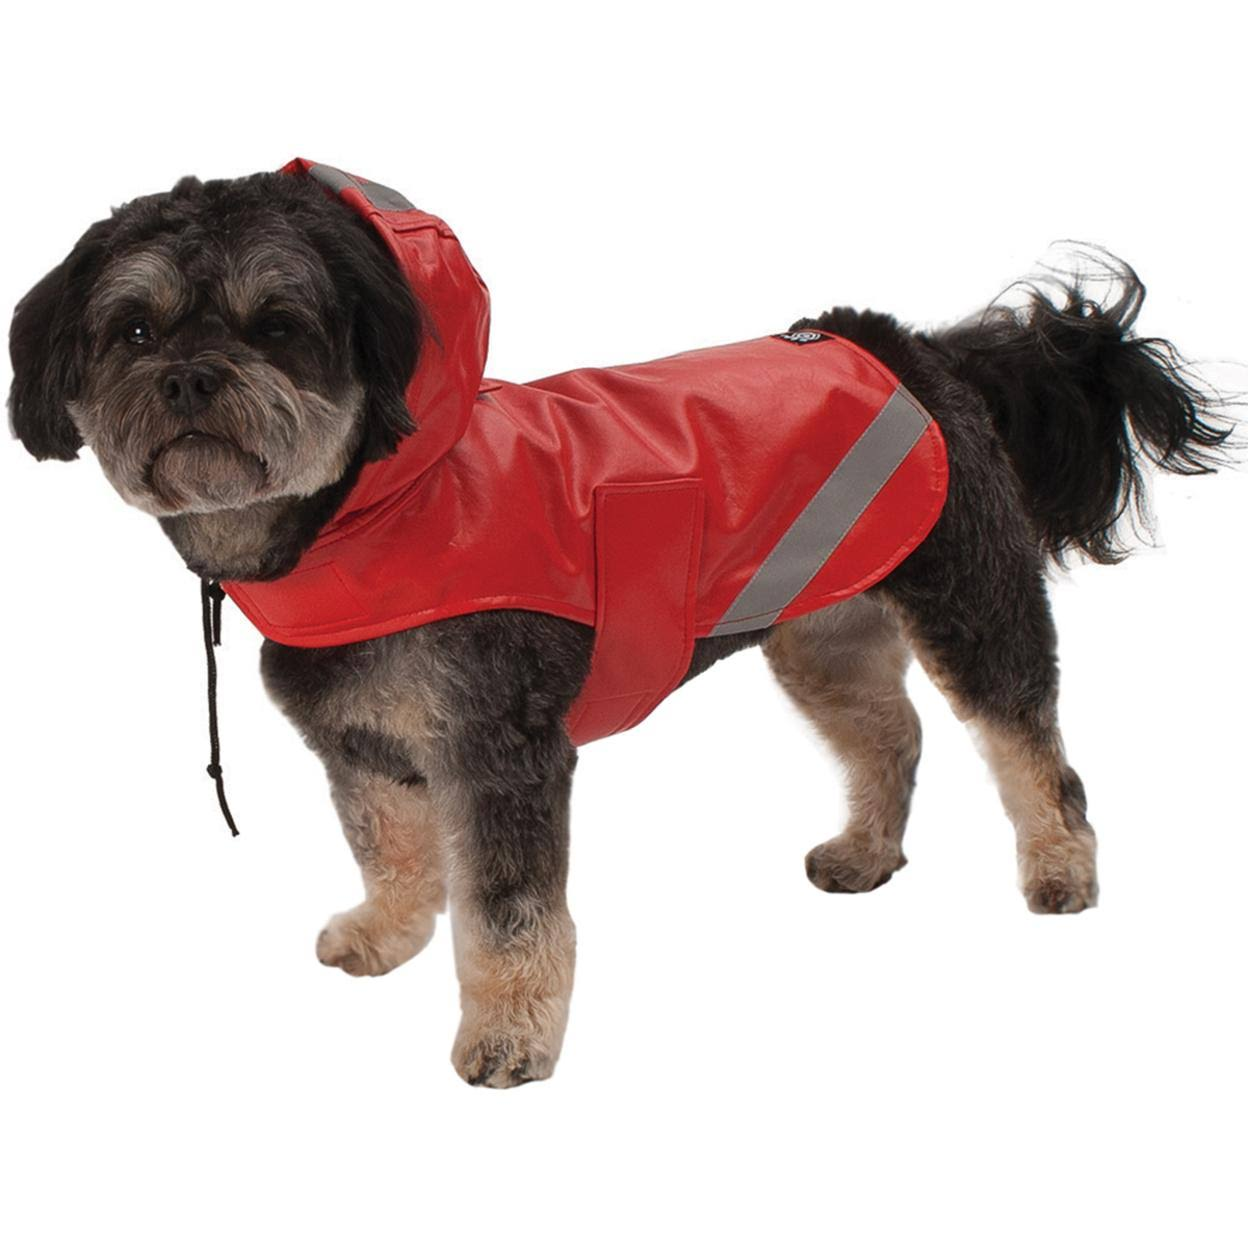 Reflective Slicker Dog Rain Coat Jacket - Small, Red